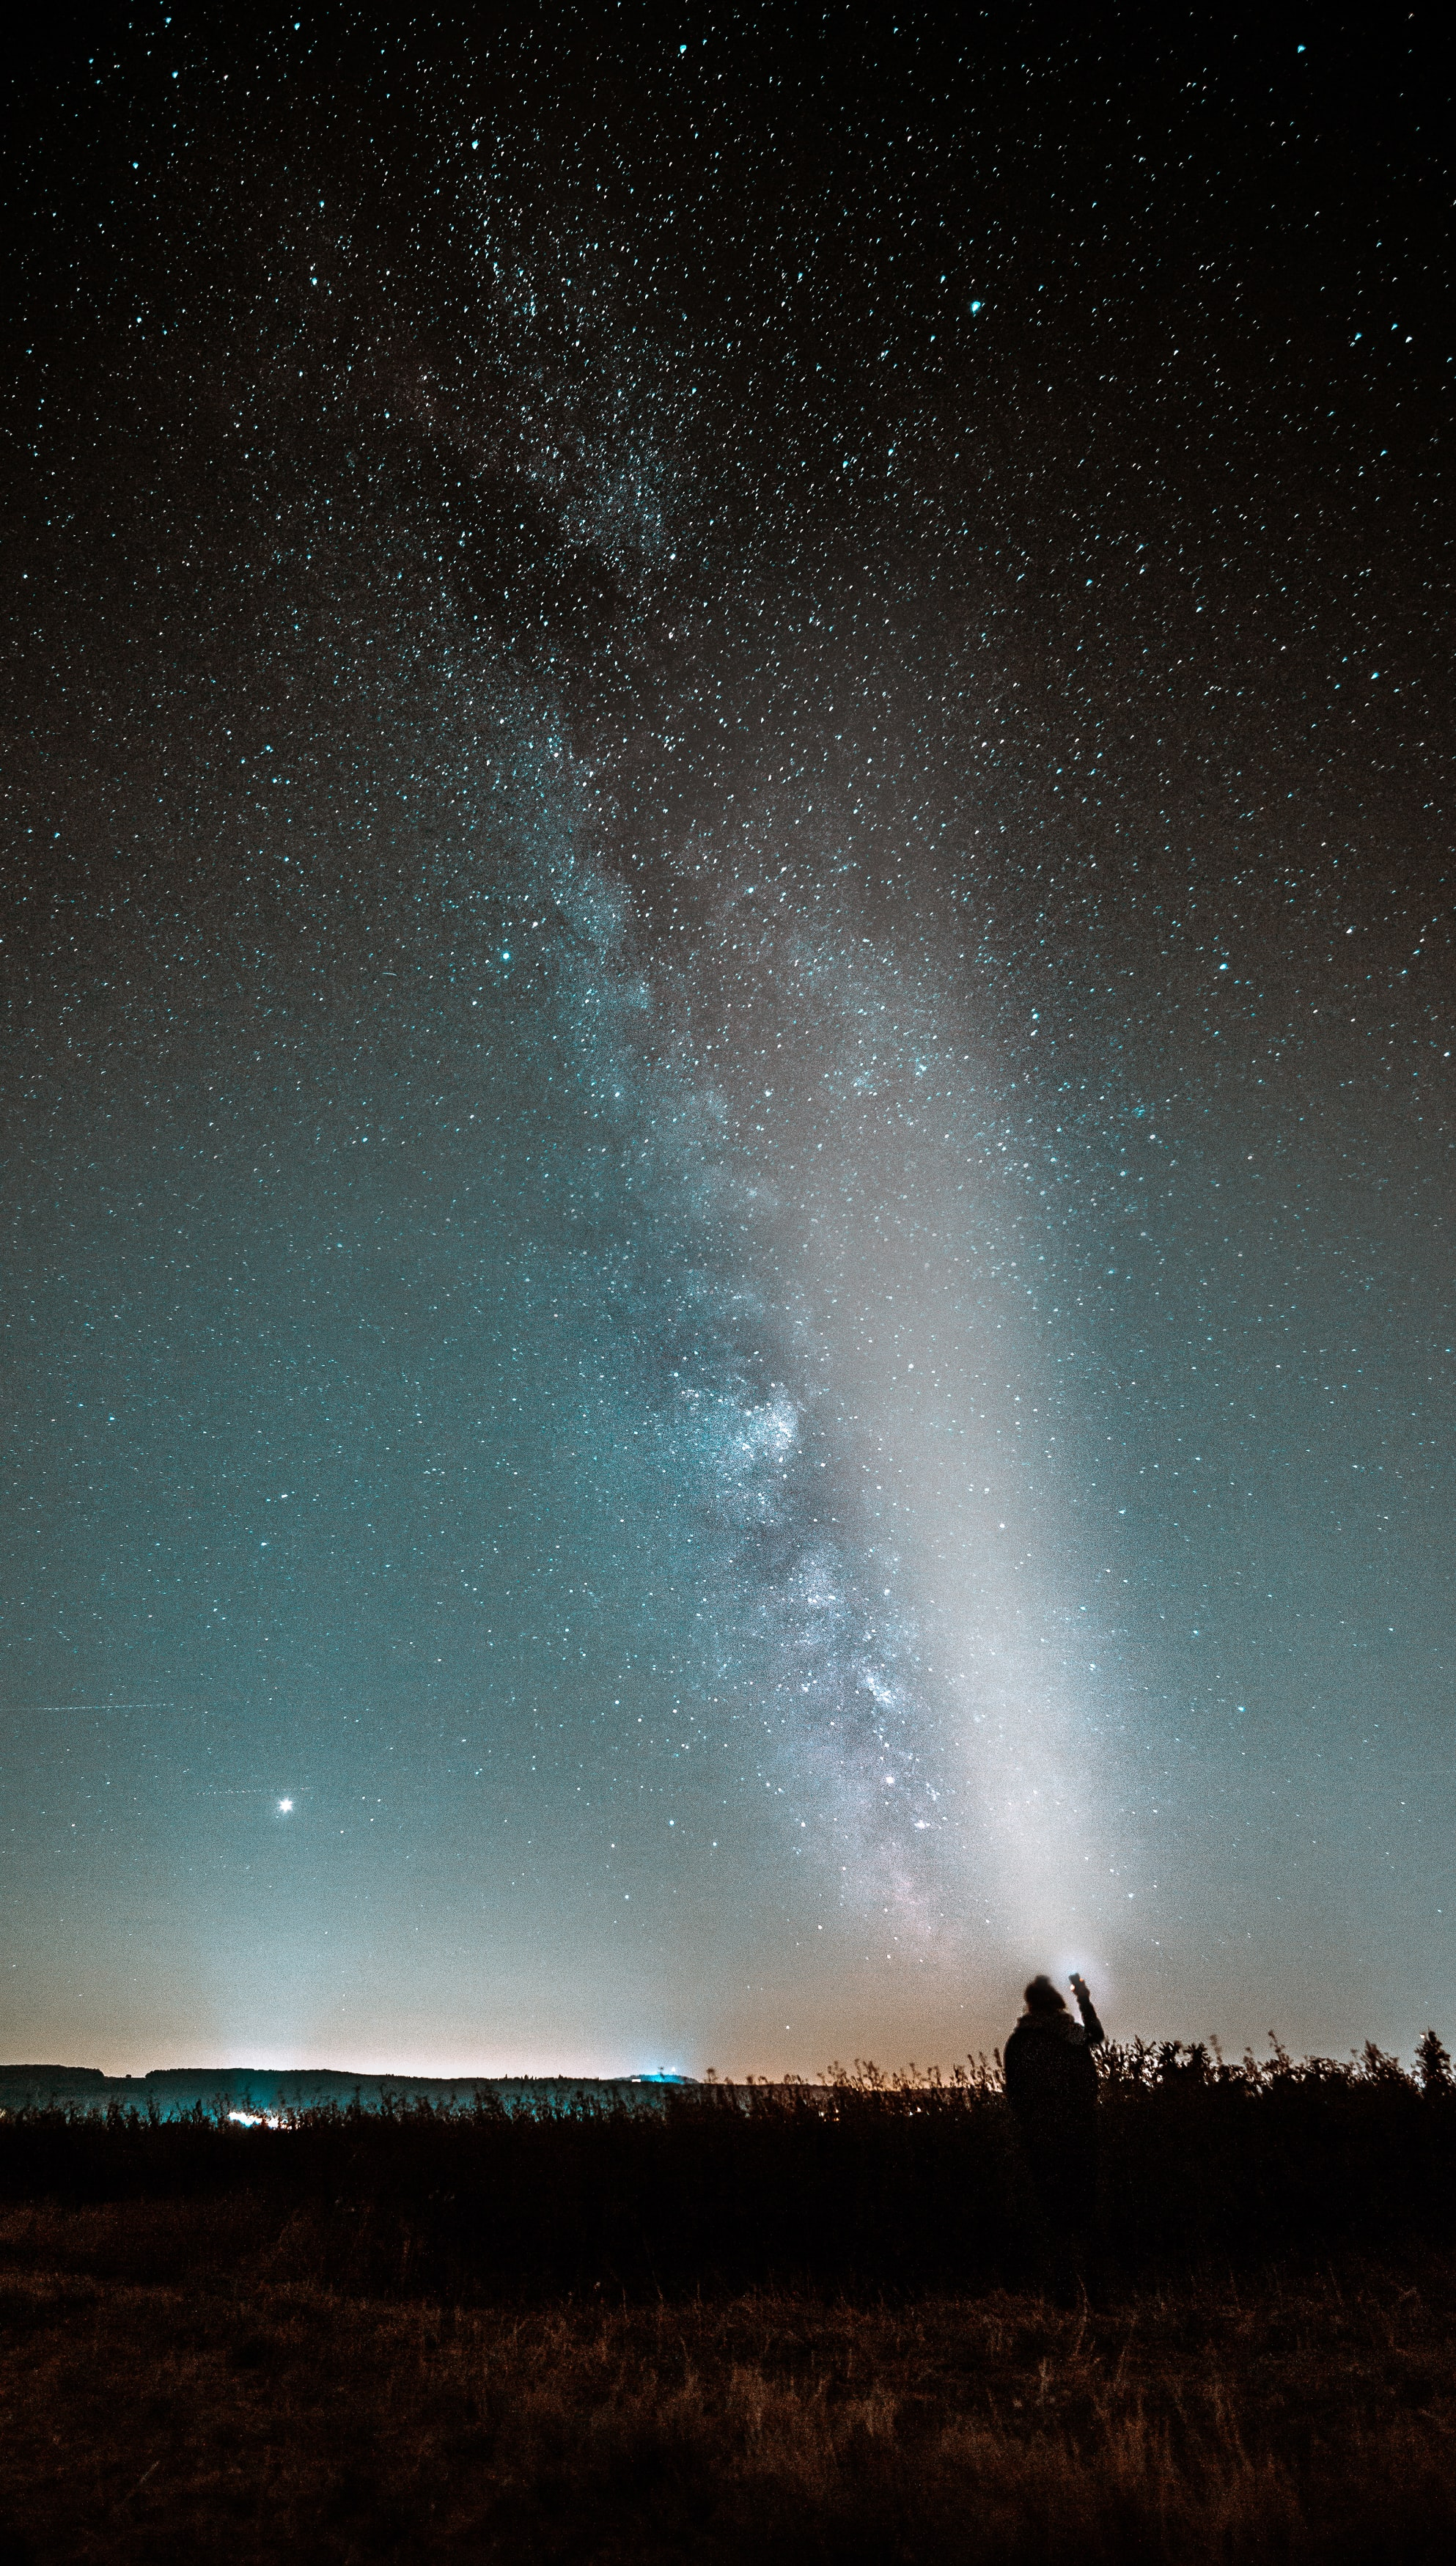 silhouette photography of person watching milky way in sky